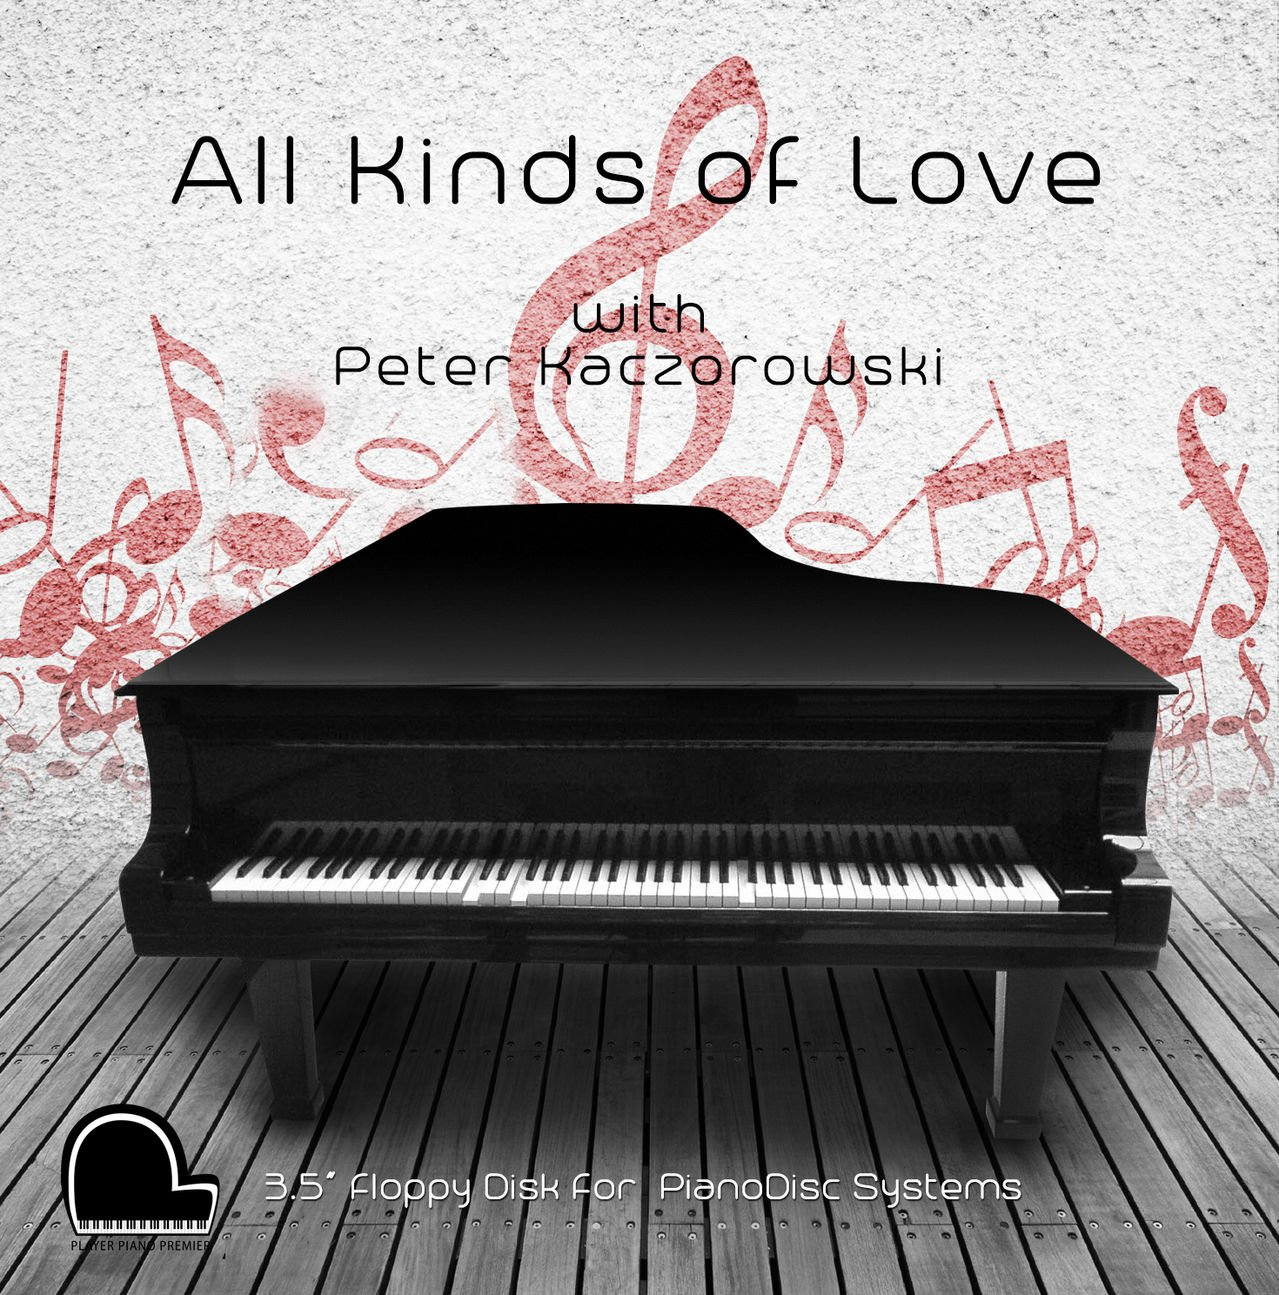 All Kinds of Love - PianoDisc Compatible Player Piano Music on 3.5'' DD 720k Floppy Disk